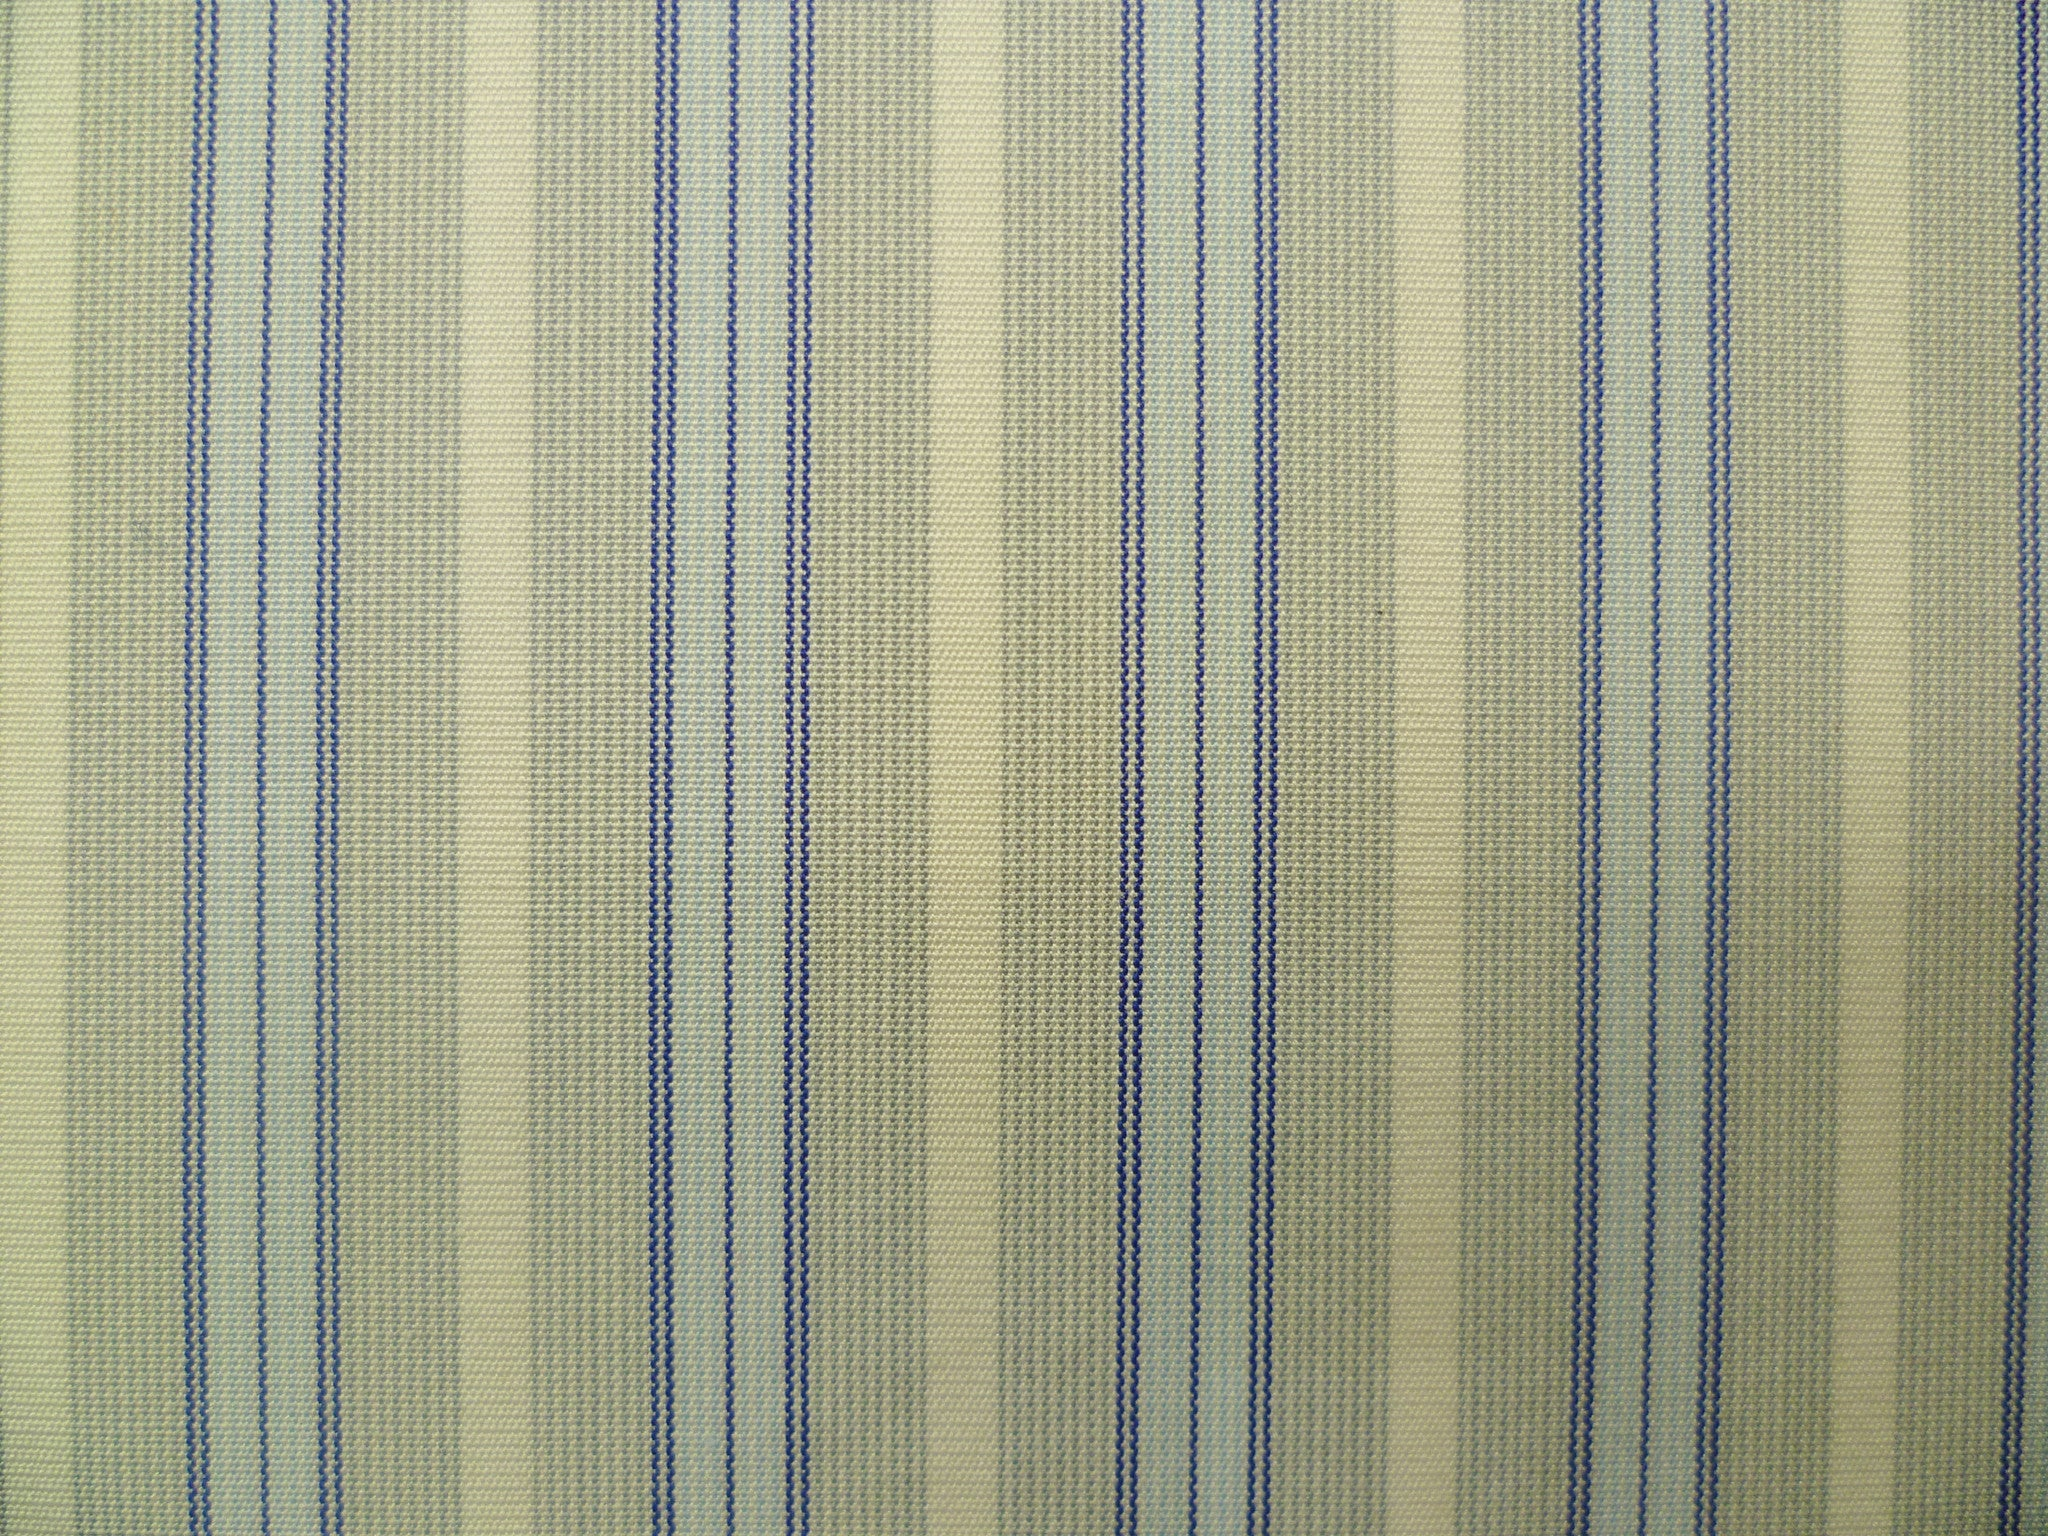 Stone Grey and White Hairline with Baby Blue and Indigo Multi-Striped Cotton